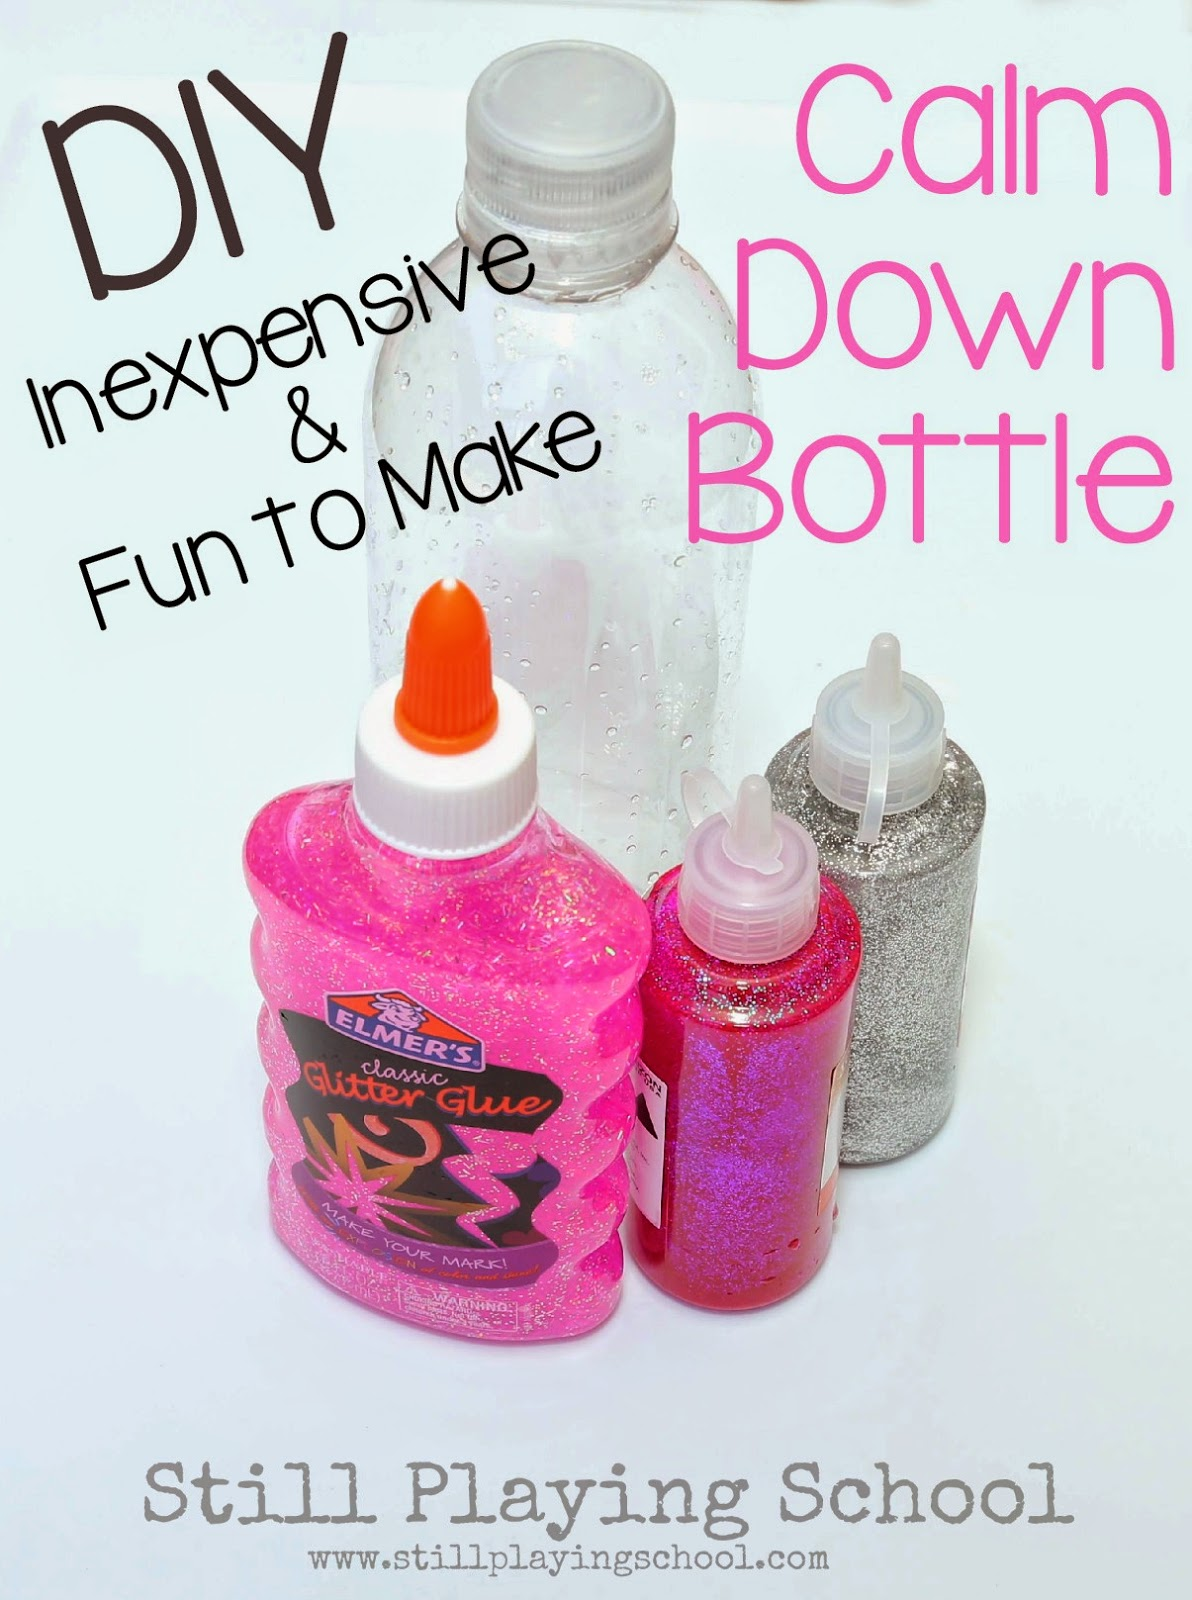 how-to-make-calm-down-bottle